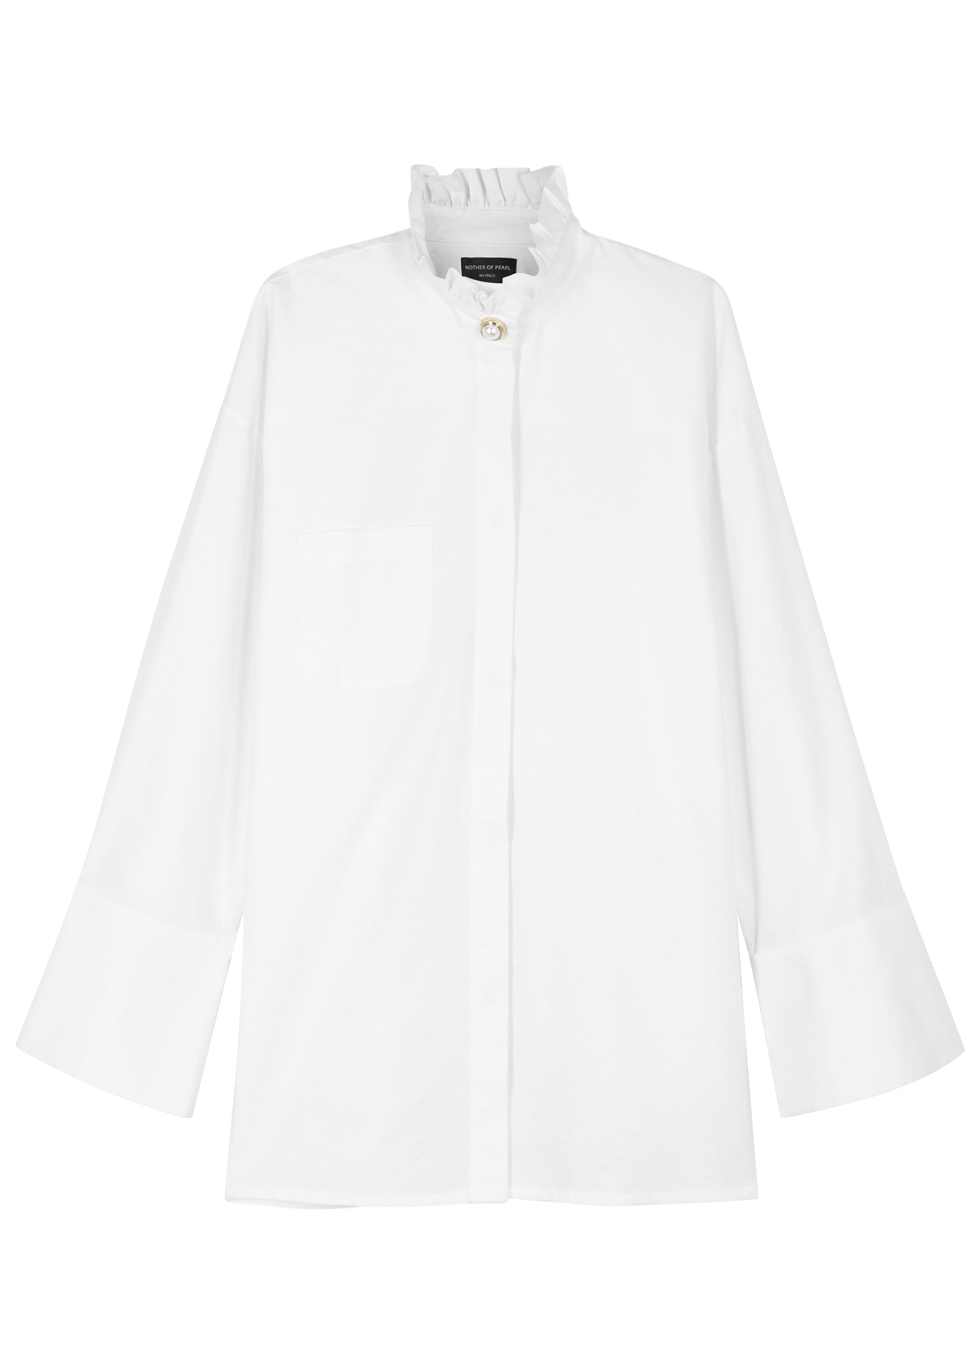 MOTHER OF PEARL CINDY OFF-WHITE ORGANIC COTTON SHIRT